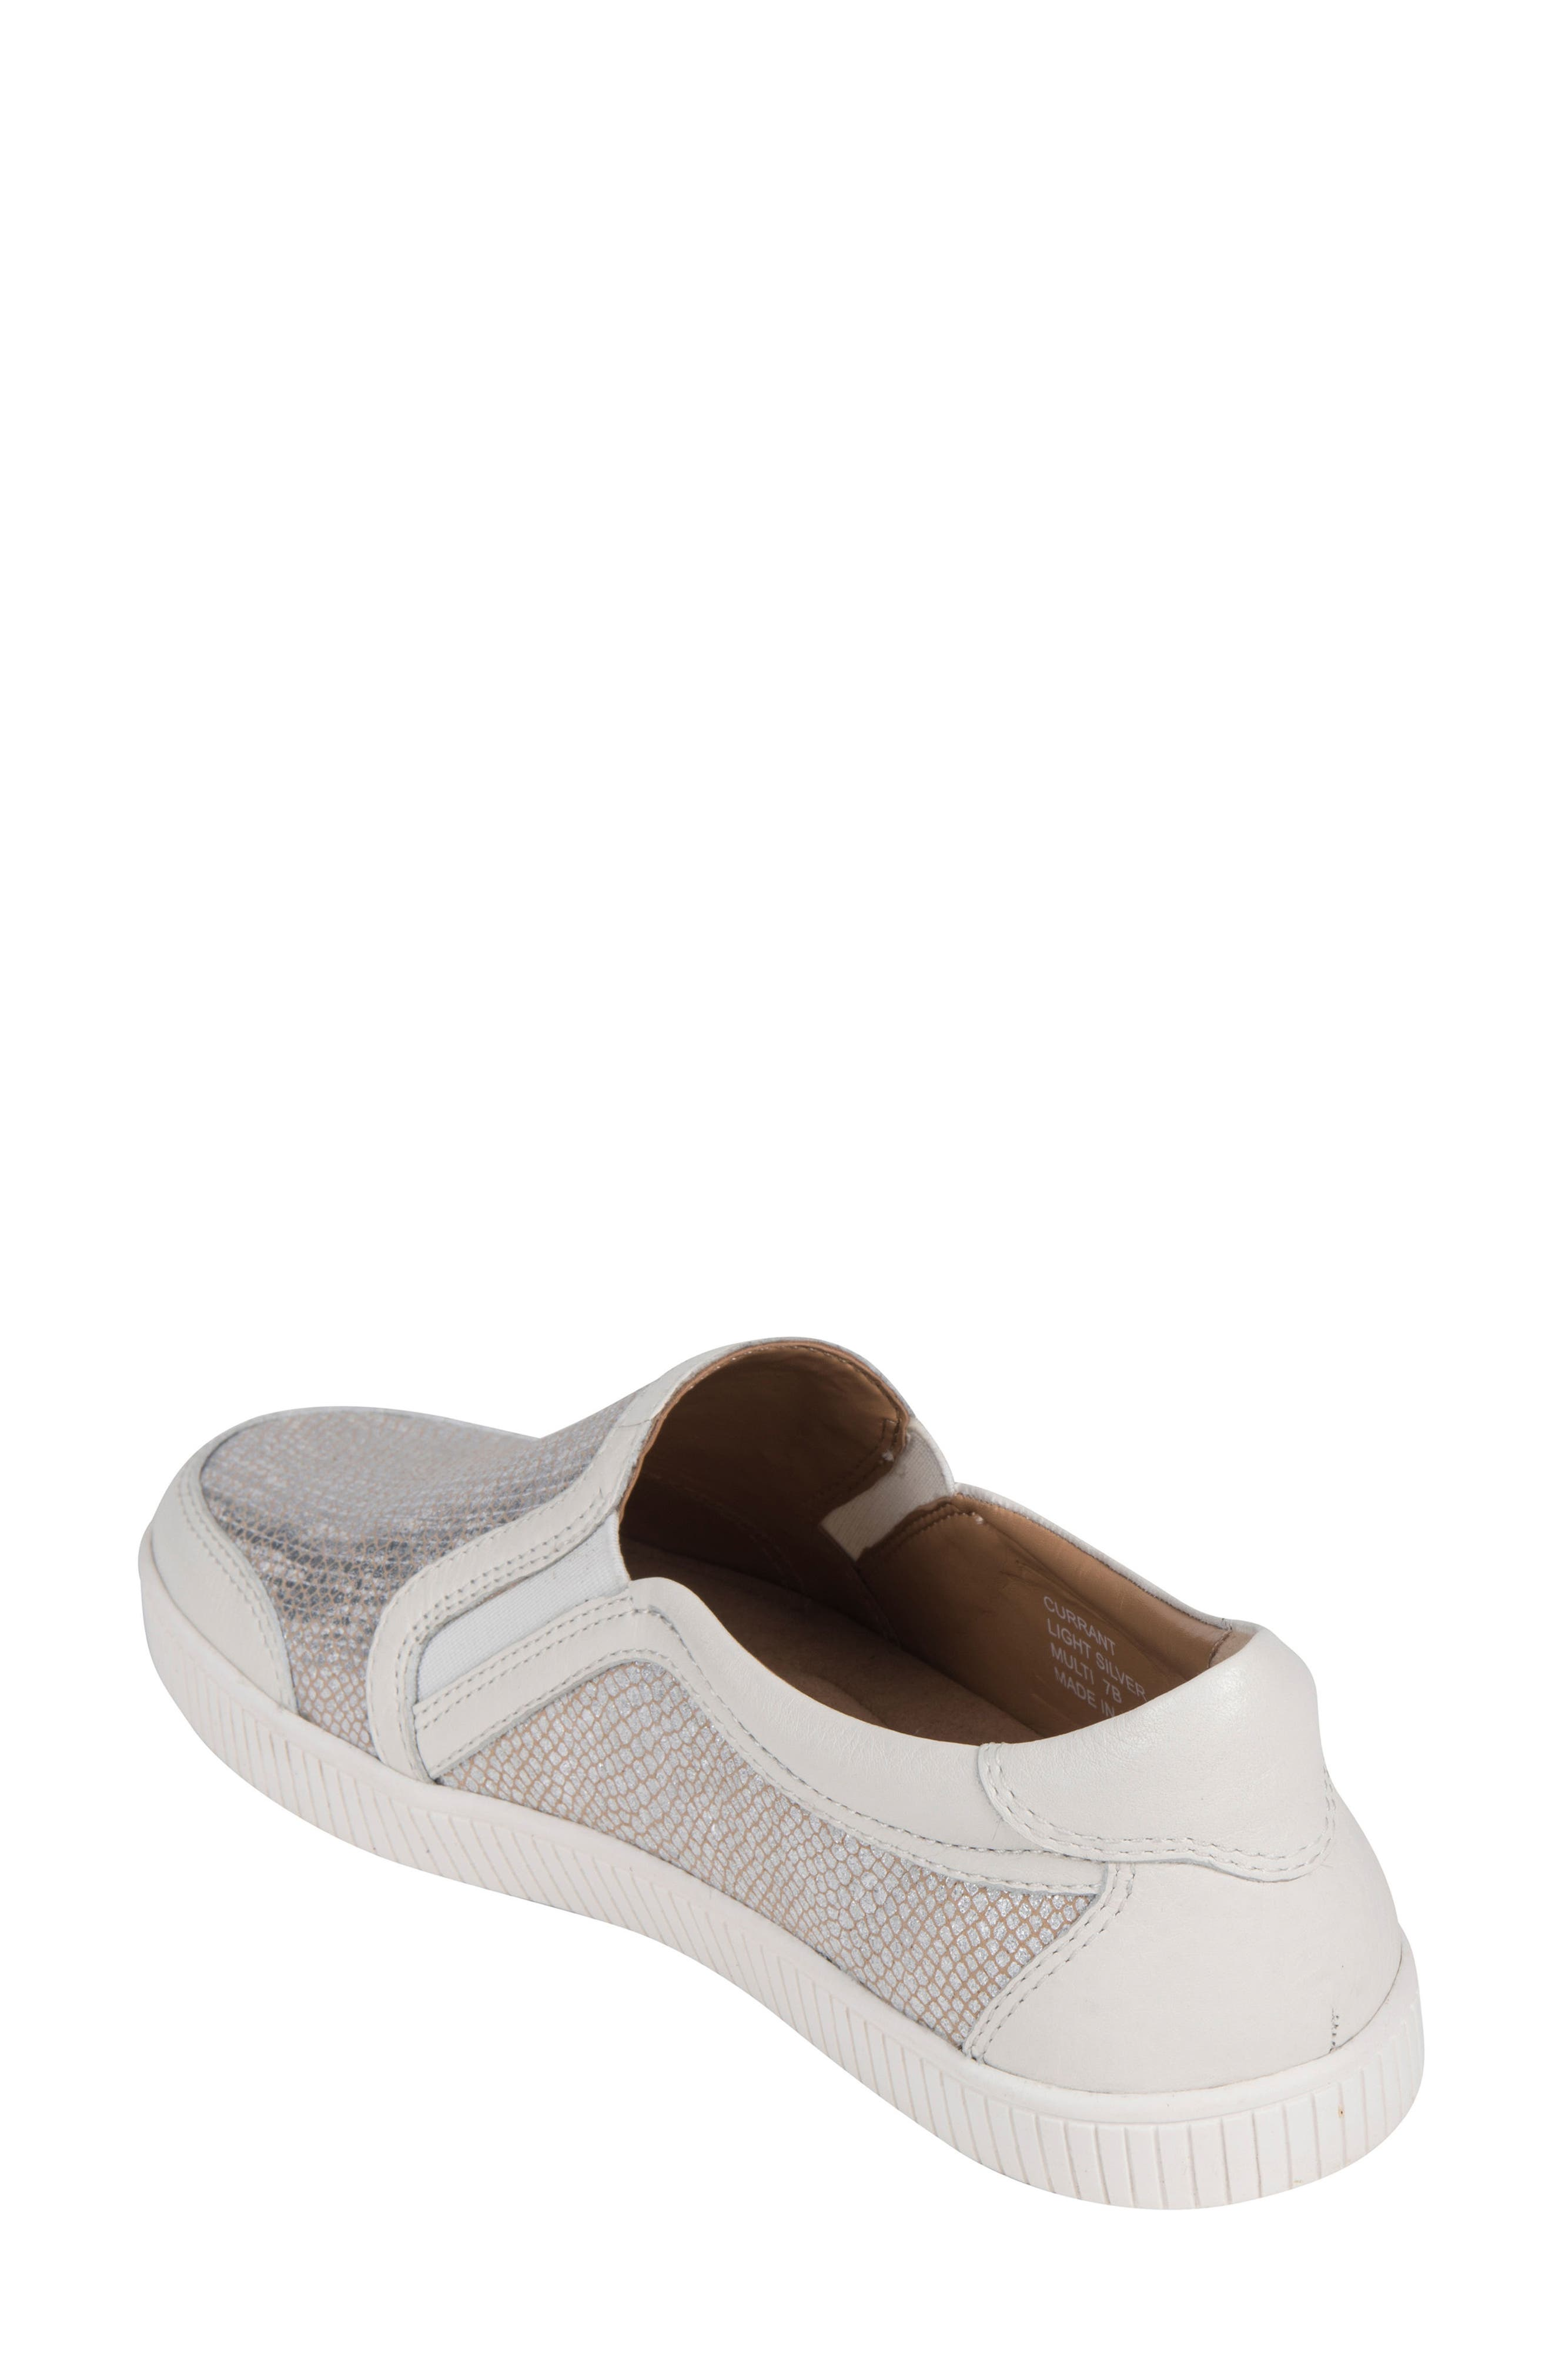 Currant Slip-On Sneaker,                             Alternate thumbnail 2, color,                             045